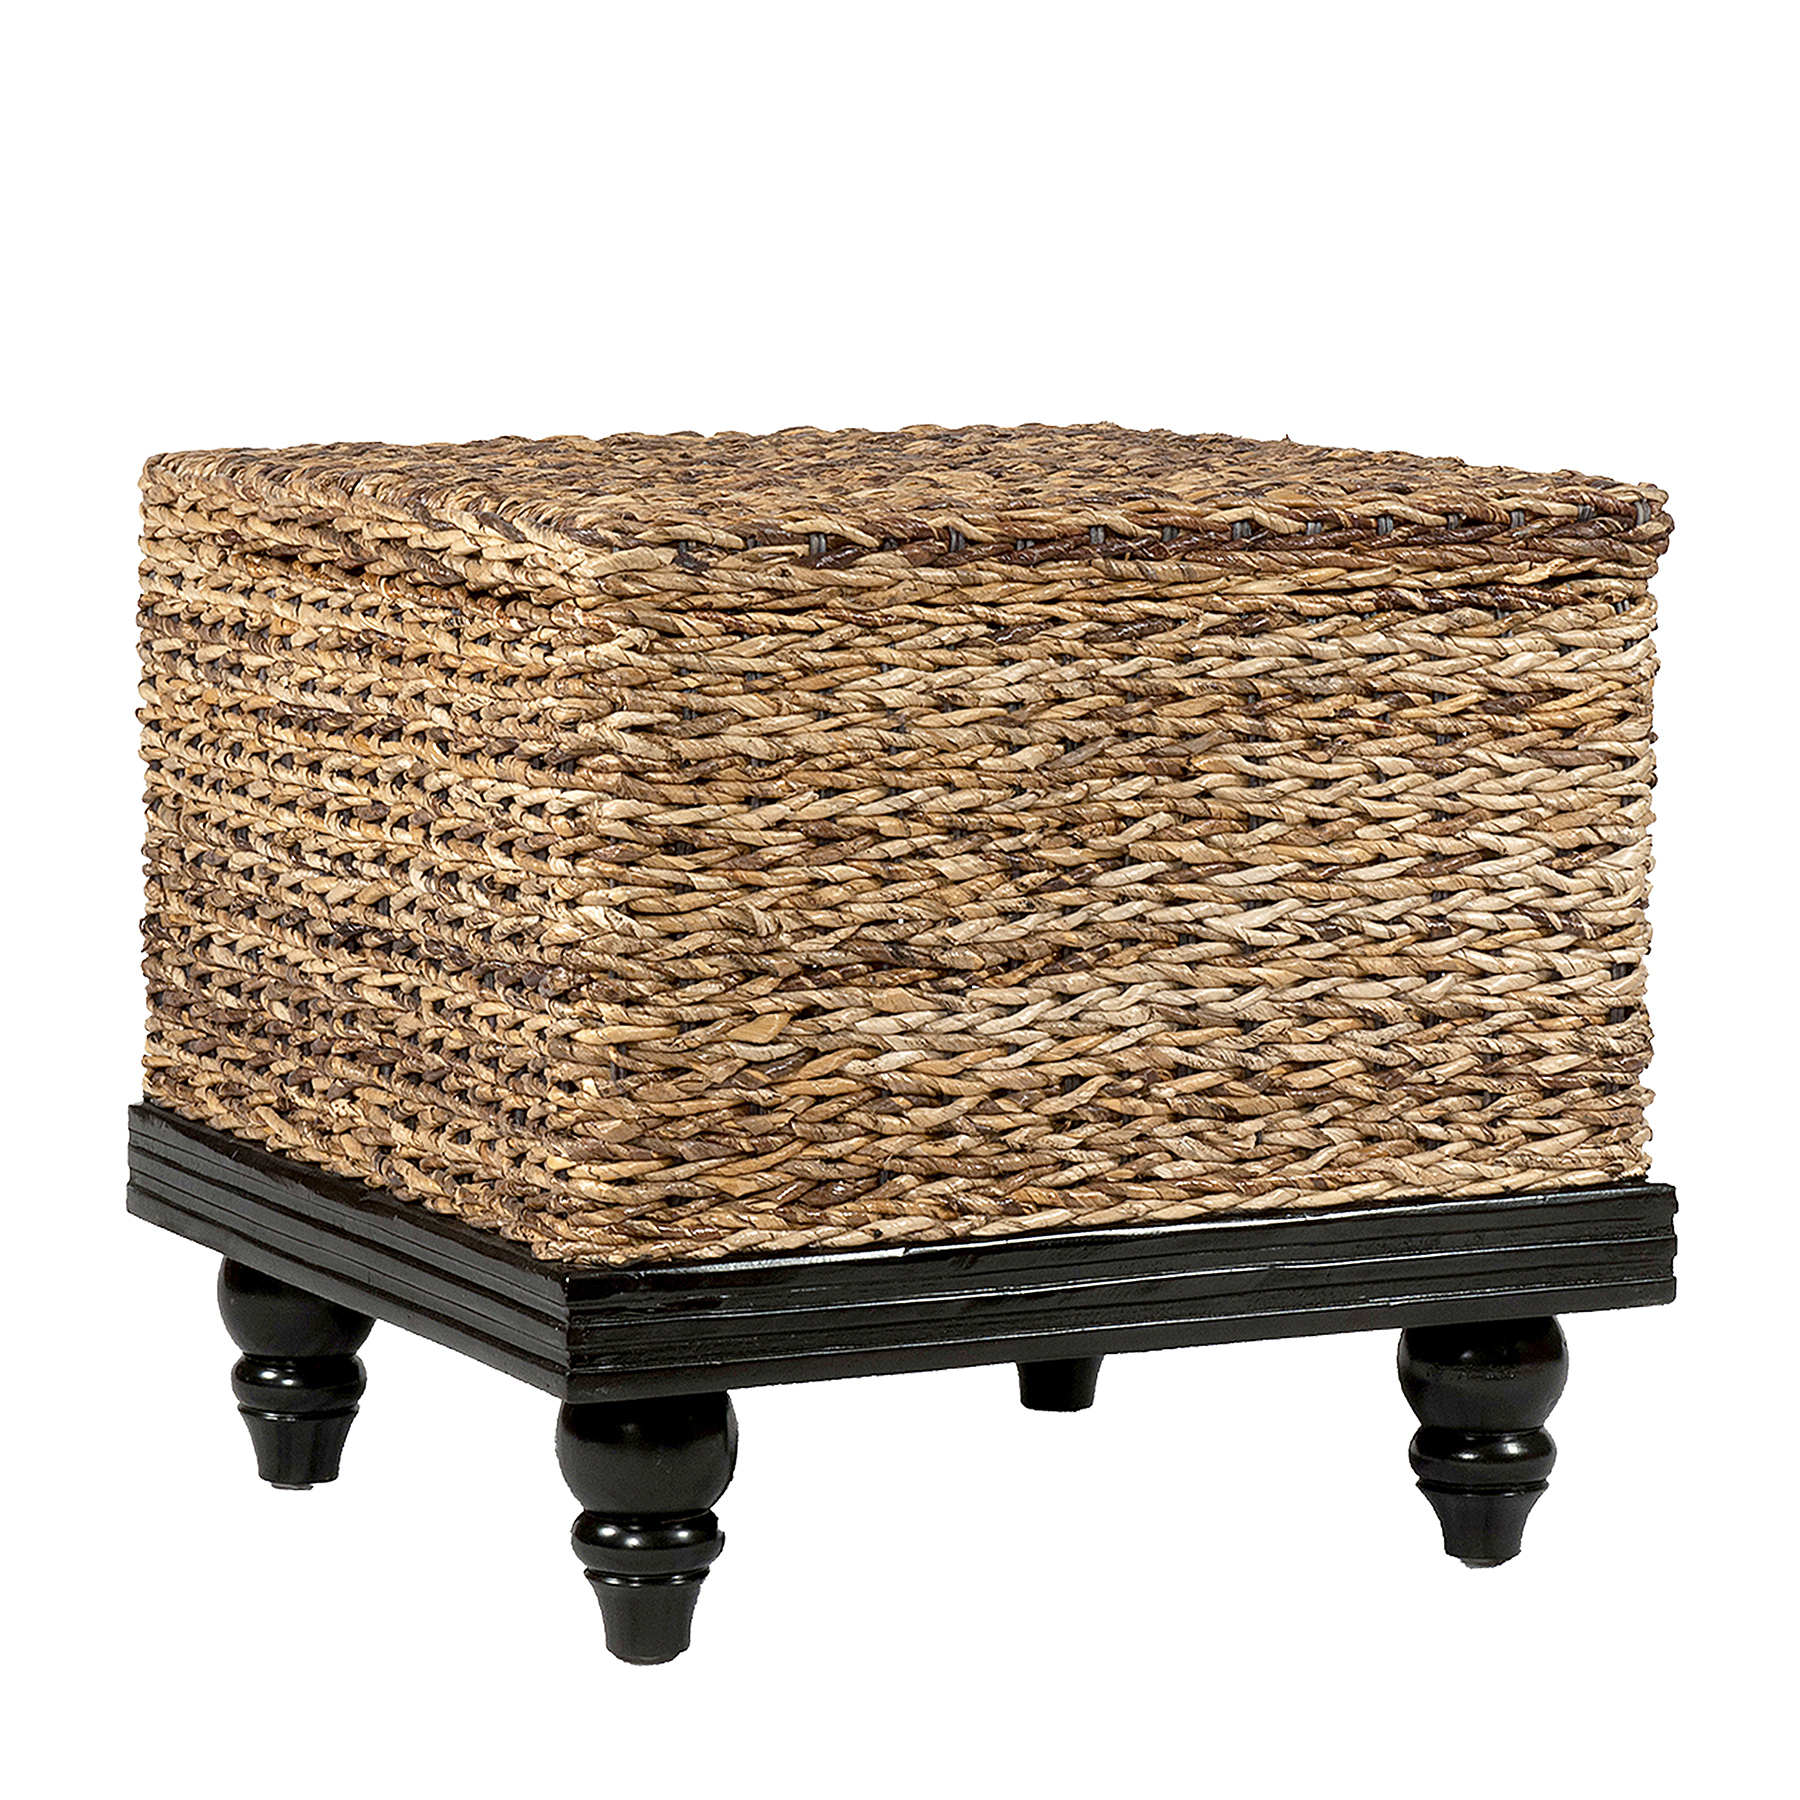 Tropical End Table Abaca Small Astor W/ Storage (24x24x22)